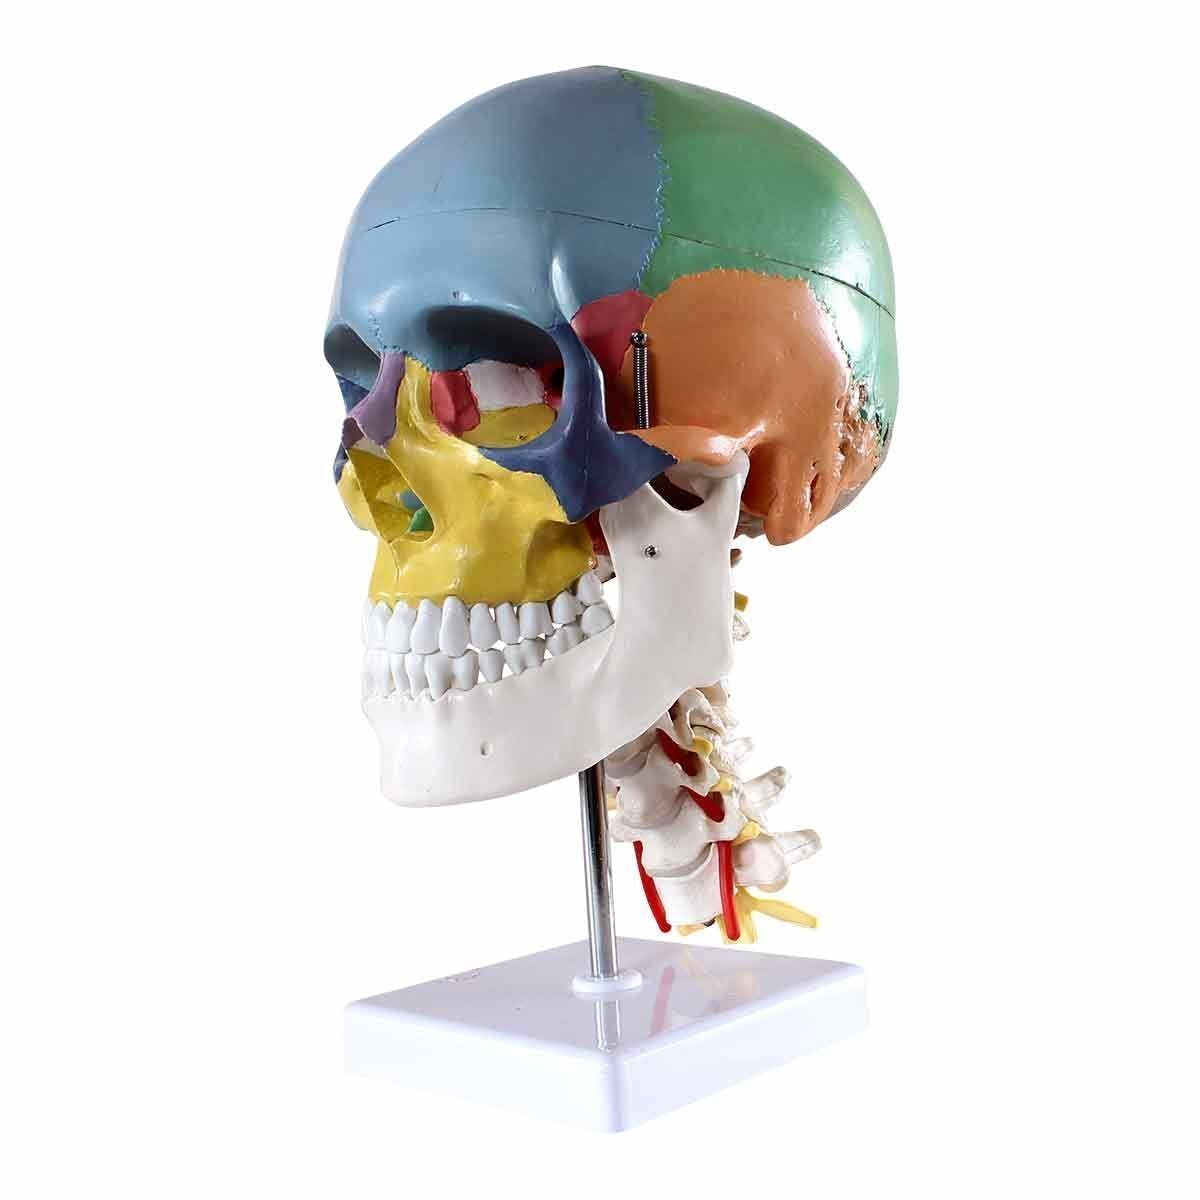 Dental Power Product Didactic Human Skull Model, with 7 Cervical Vertebrae, Nerve and Artery, on Stand